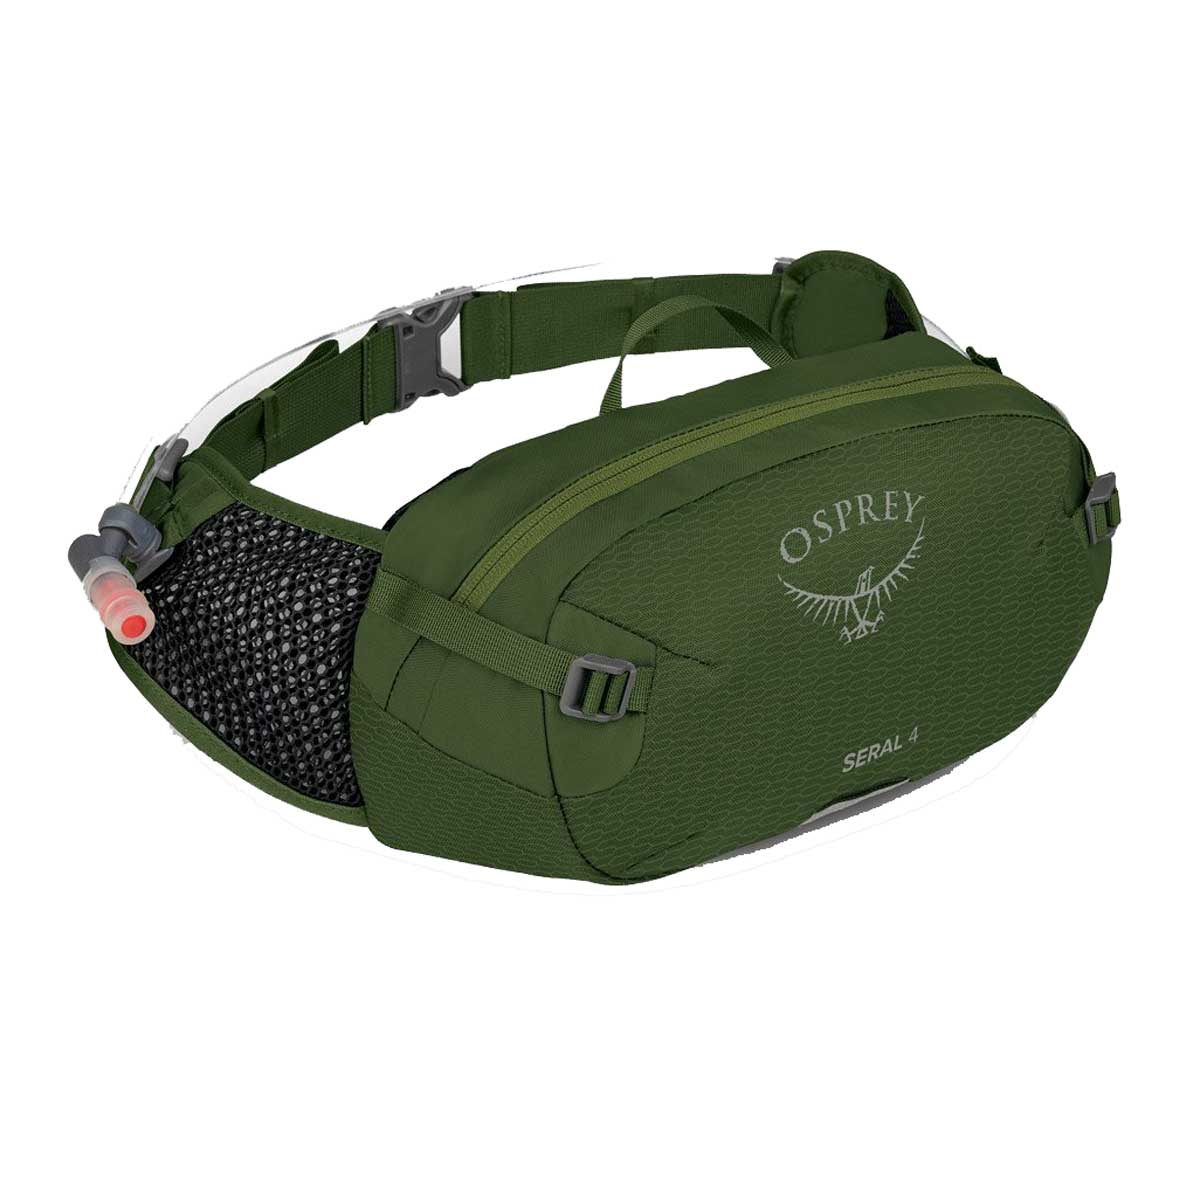 Osprey Seral 4 Pack with Reservoir in Dustmoss Green